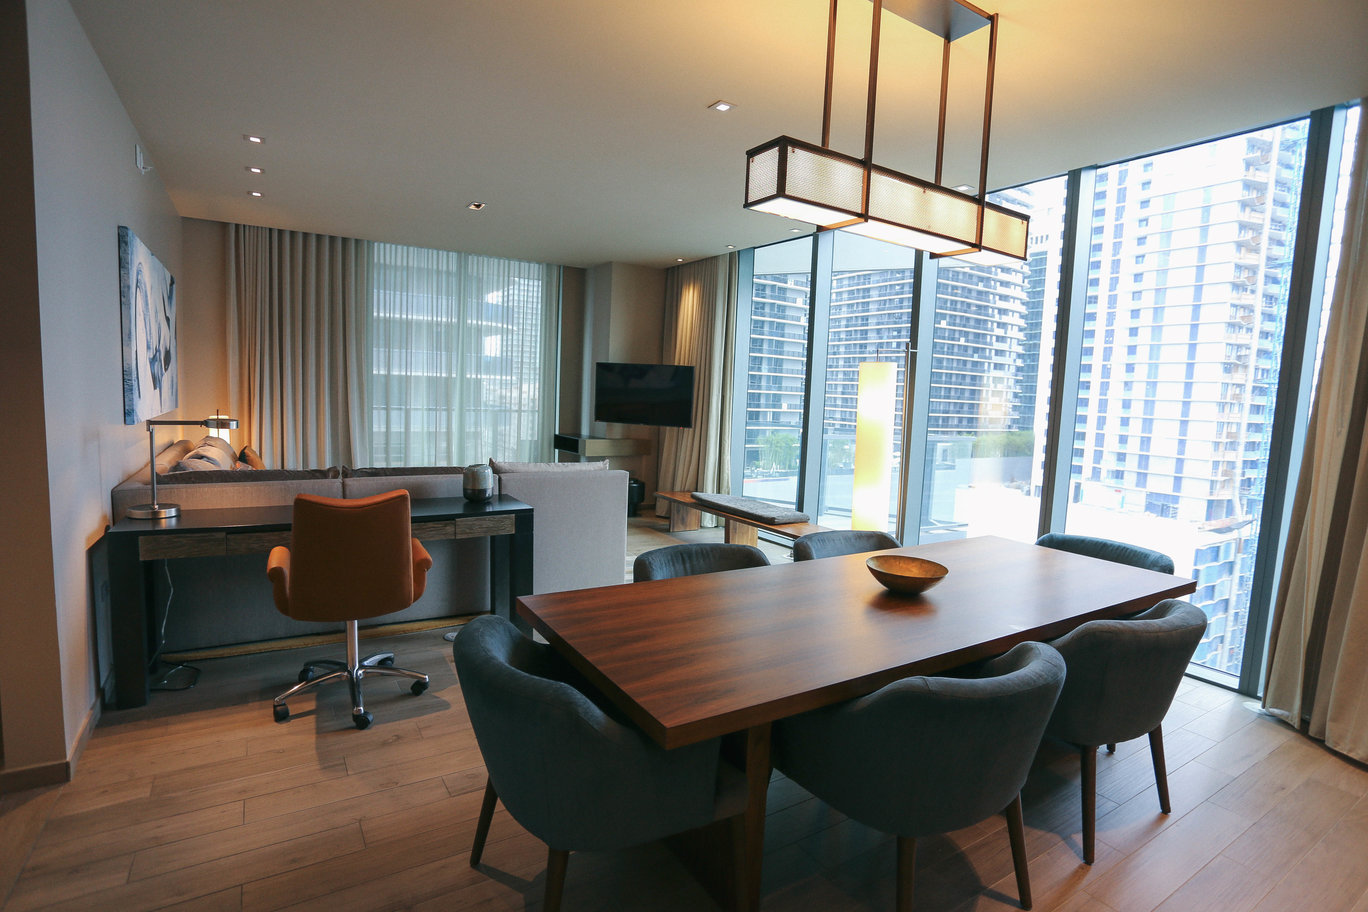 East miami asian inspired design sustainability luxury zeeba life for Hotels with 2 bedroom suites in miami